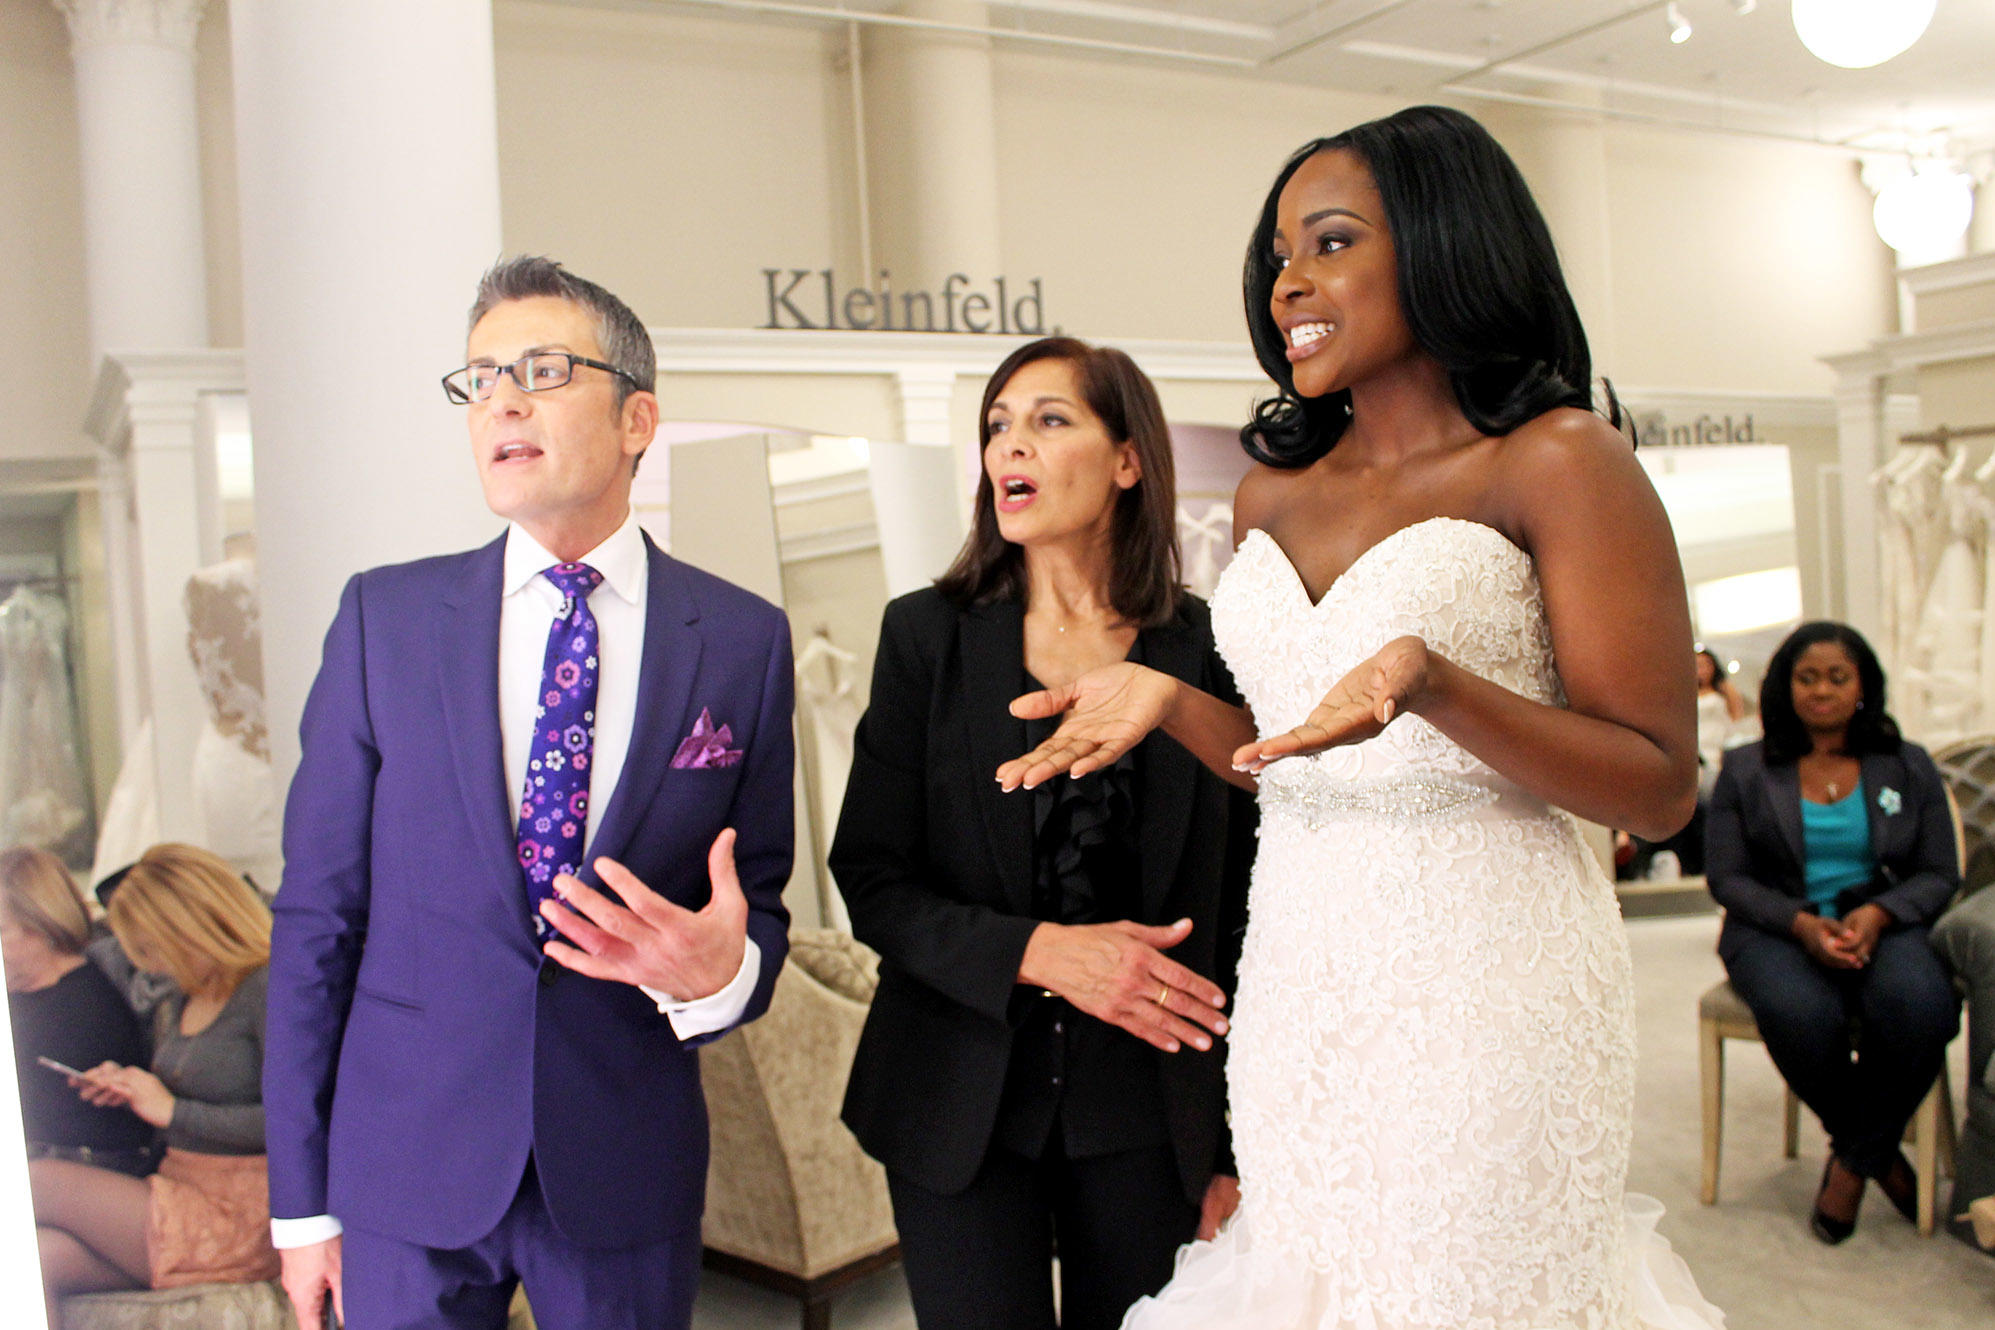 Randy Fenoli consulting bride